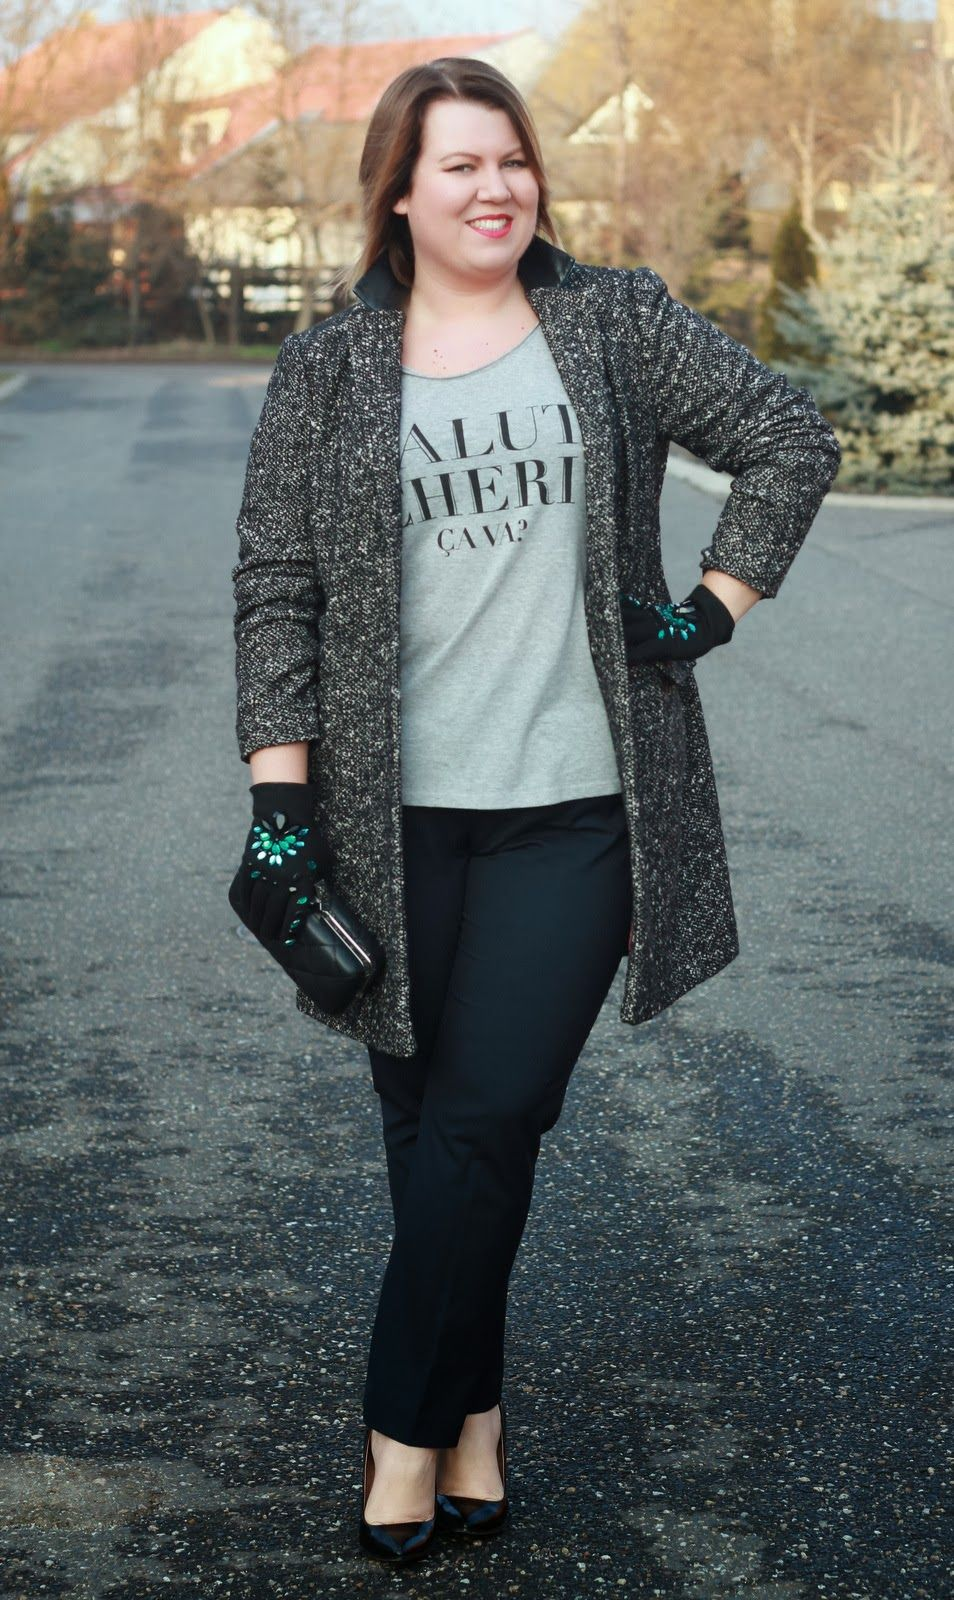 plus size life: outfit - turquoise miracle | fatshion | pinterest